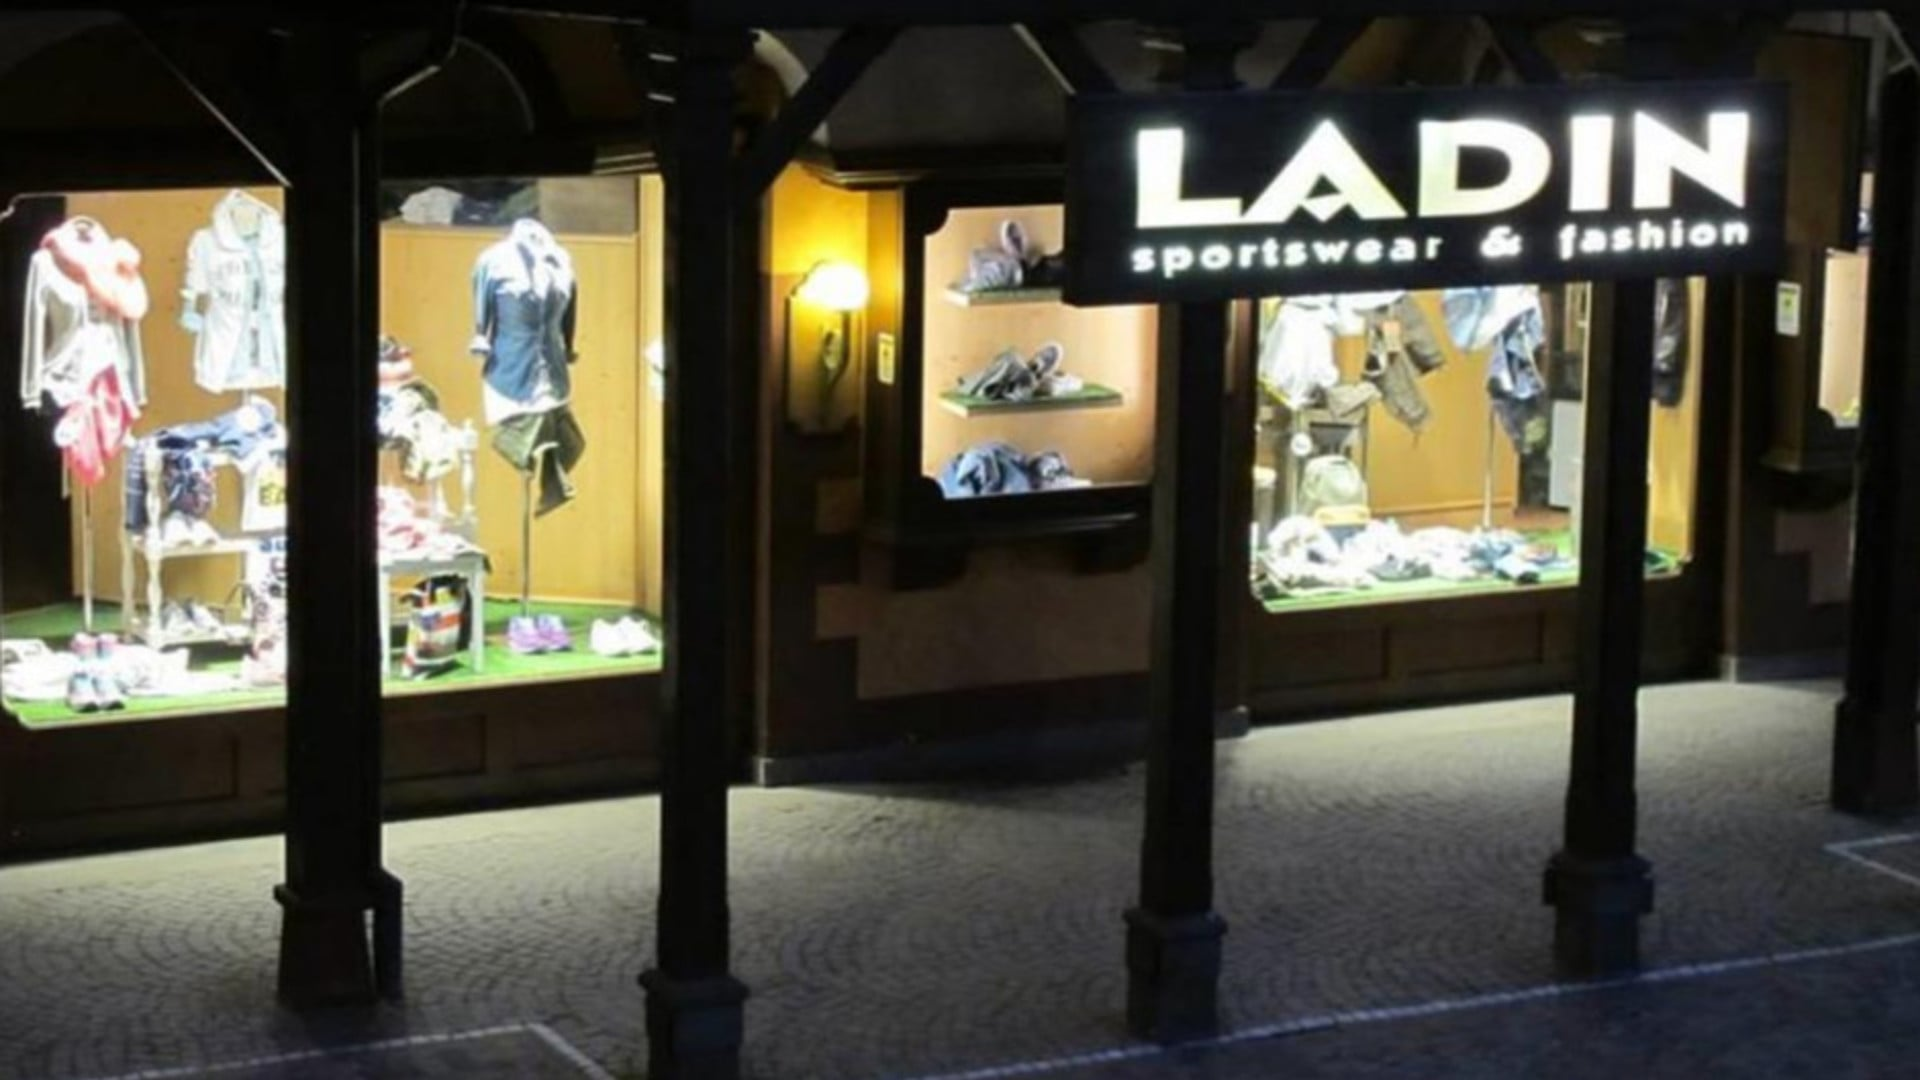 LADIN SPORTSWEAR & FASHION